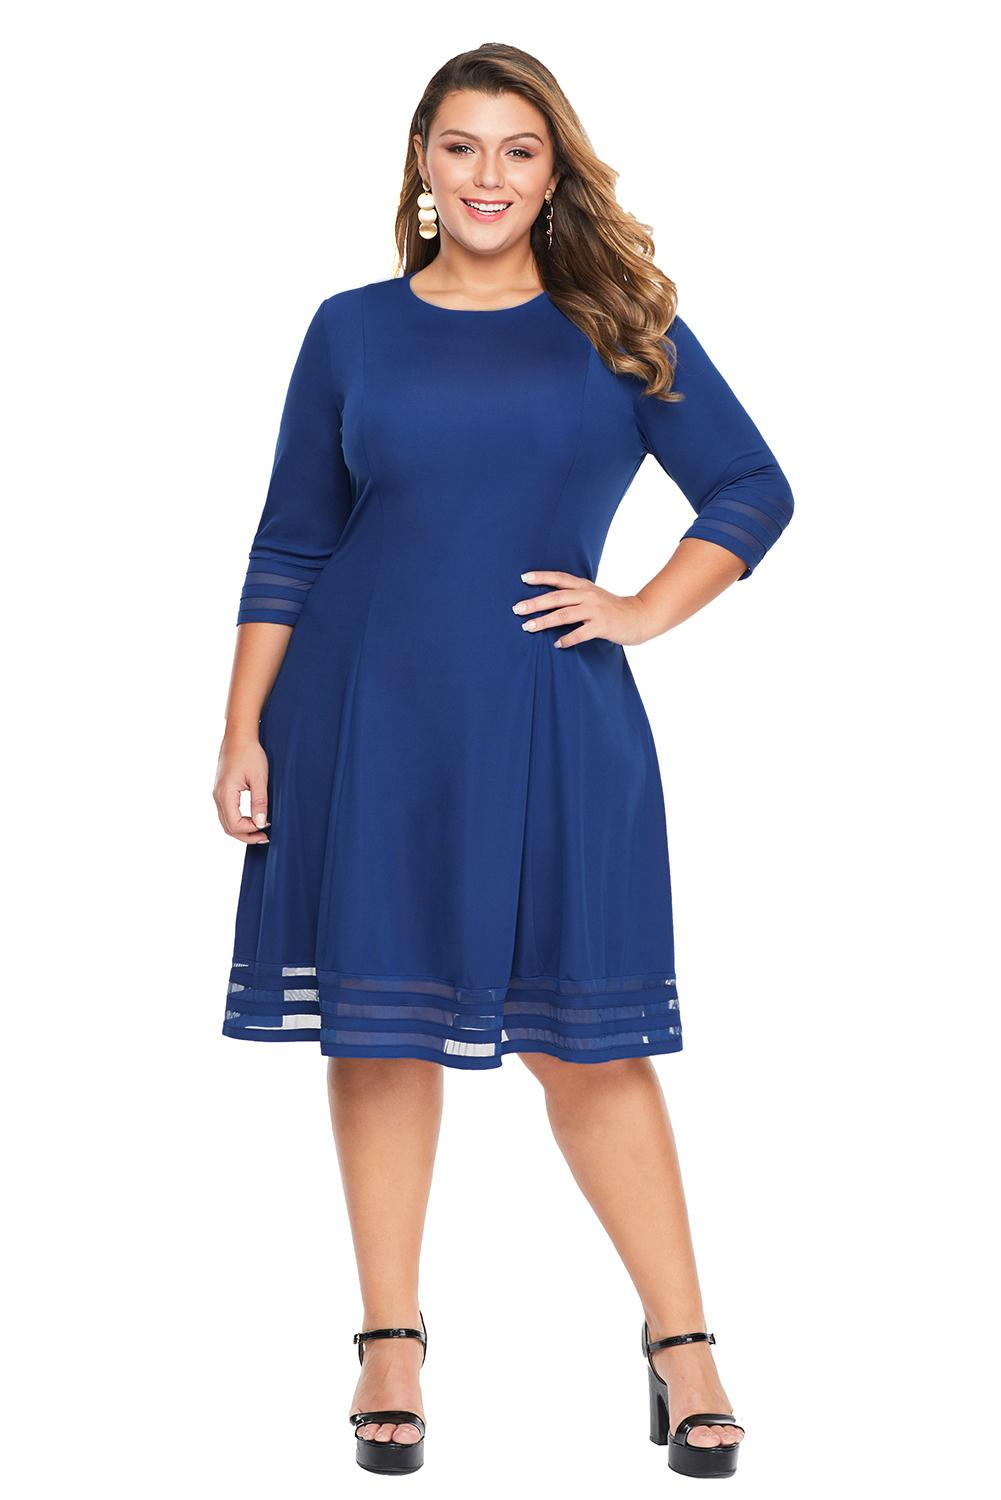 Blue 3/4 Length Sleeve Gauze Patchwork Flare Plus Size Dress Plus Size Dresses Discount Designer Fashion Clothes Shoes Bags Women Men Kids Children Black Owned Business